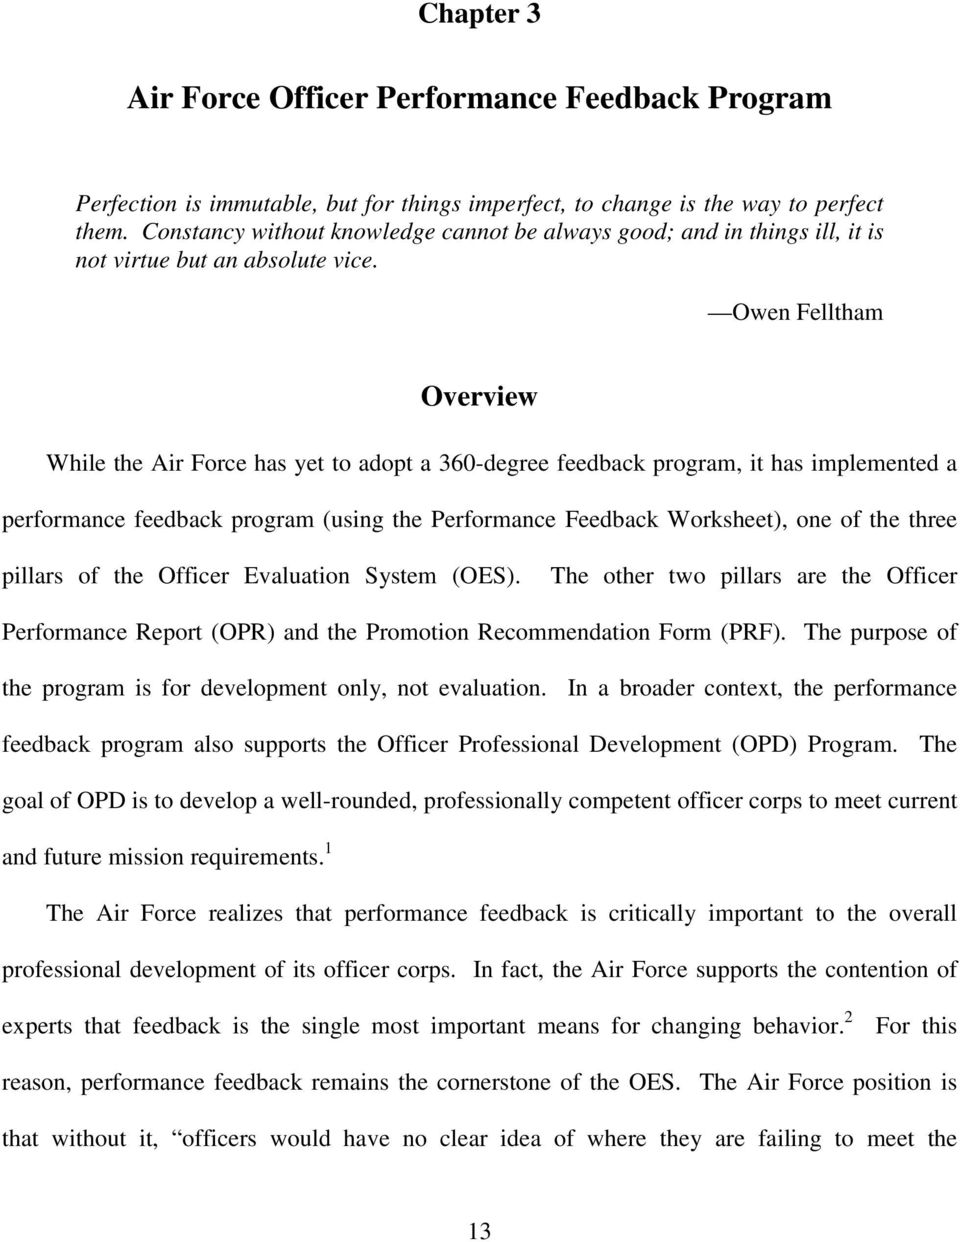 Owen Felltham Overview While the Air Force has yet to adopt a 360-degree feedback program, it has implemented a performance feedback program (using the Performance Feedback Worksheet), one of the